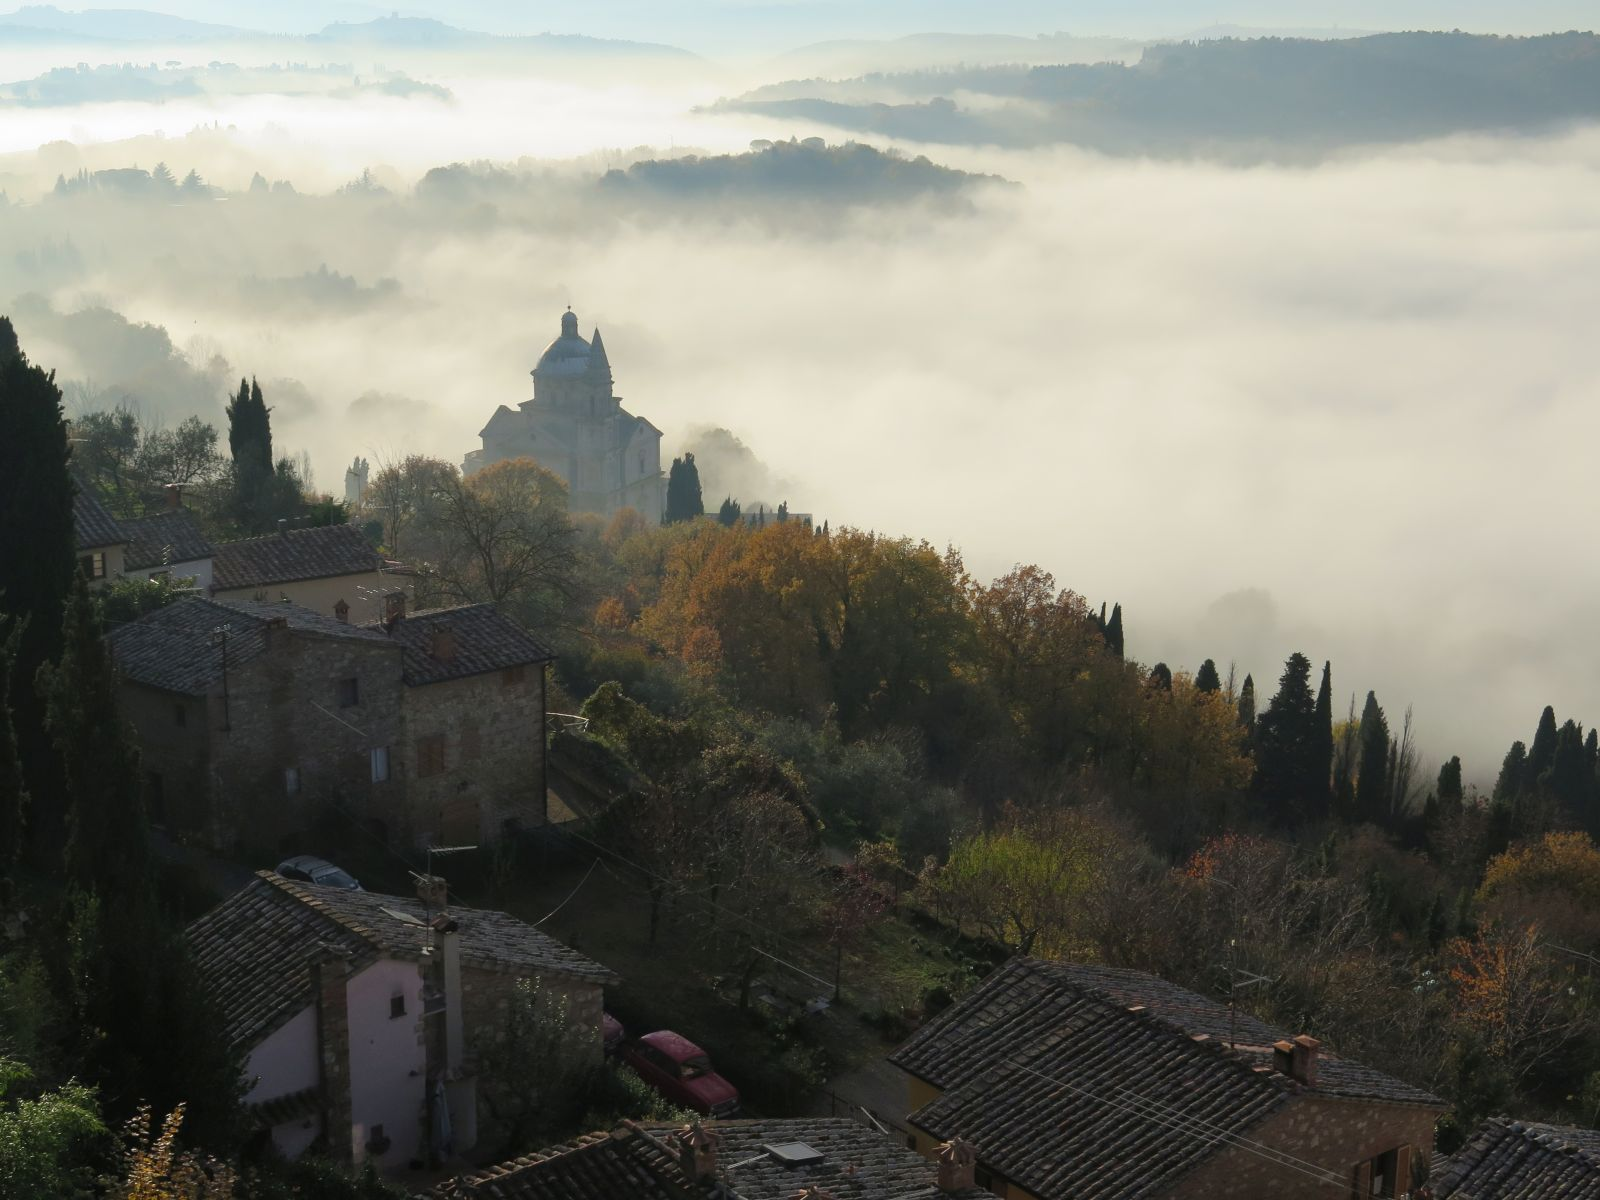 Montepulciano - Art, culture, and a tradition of fine living - Tuscany, Beautiful Everywhere